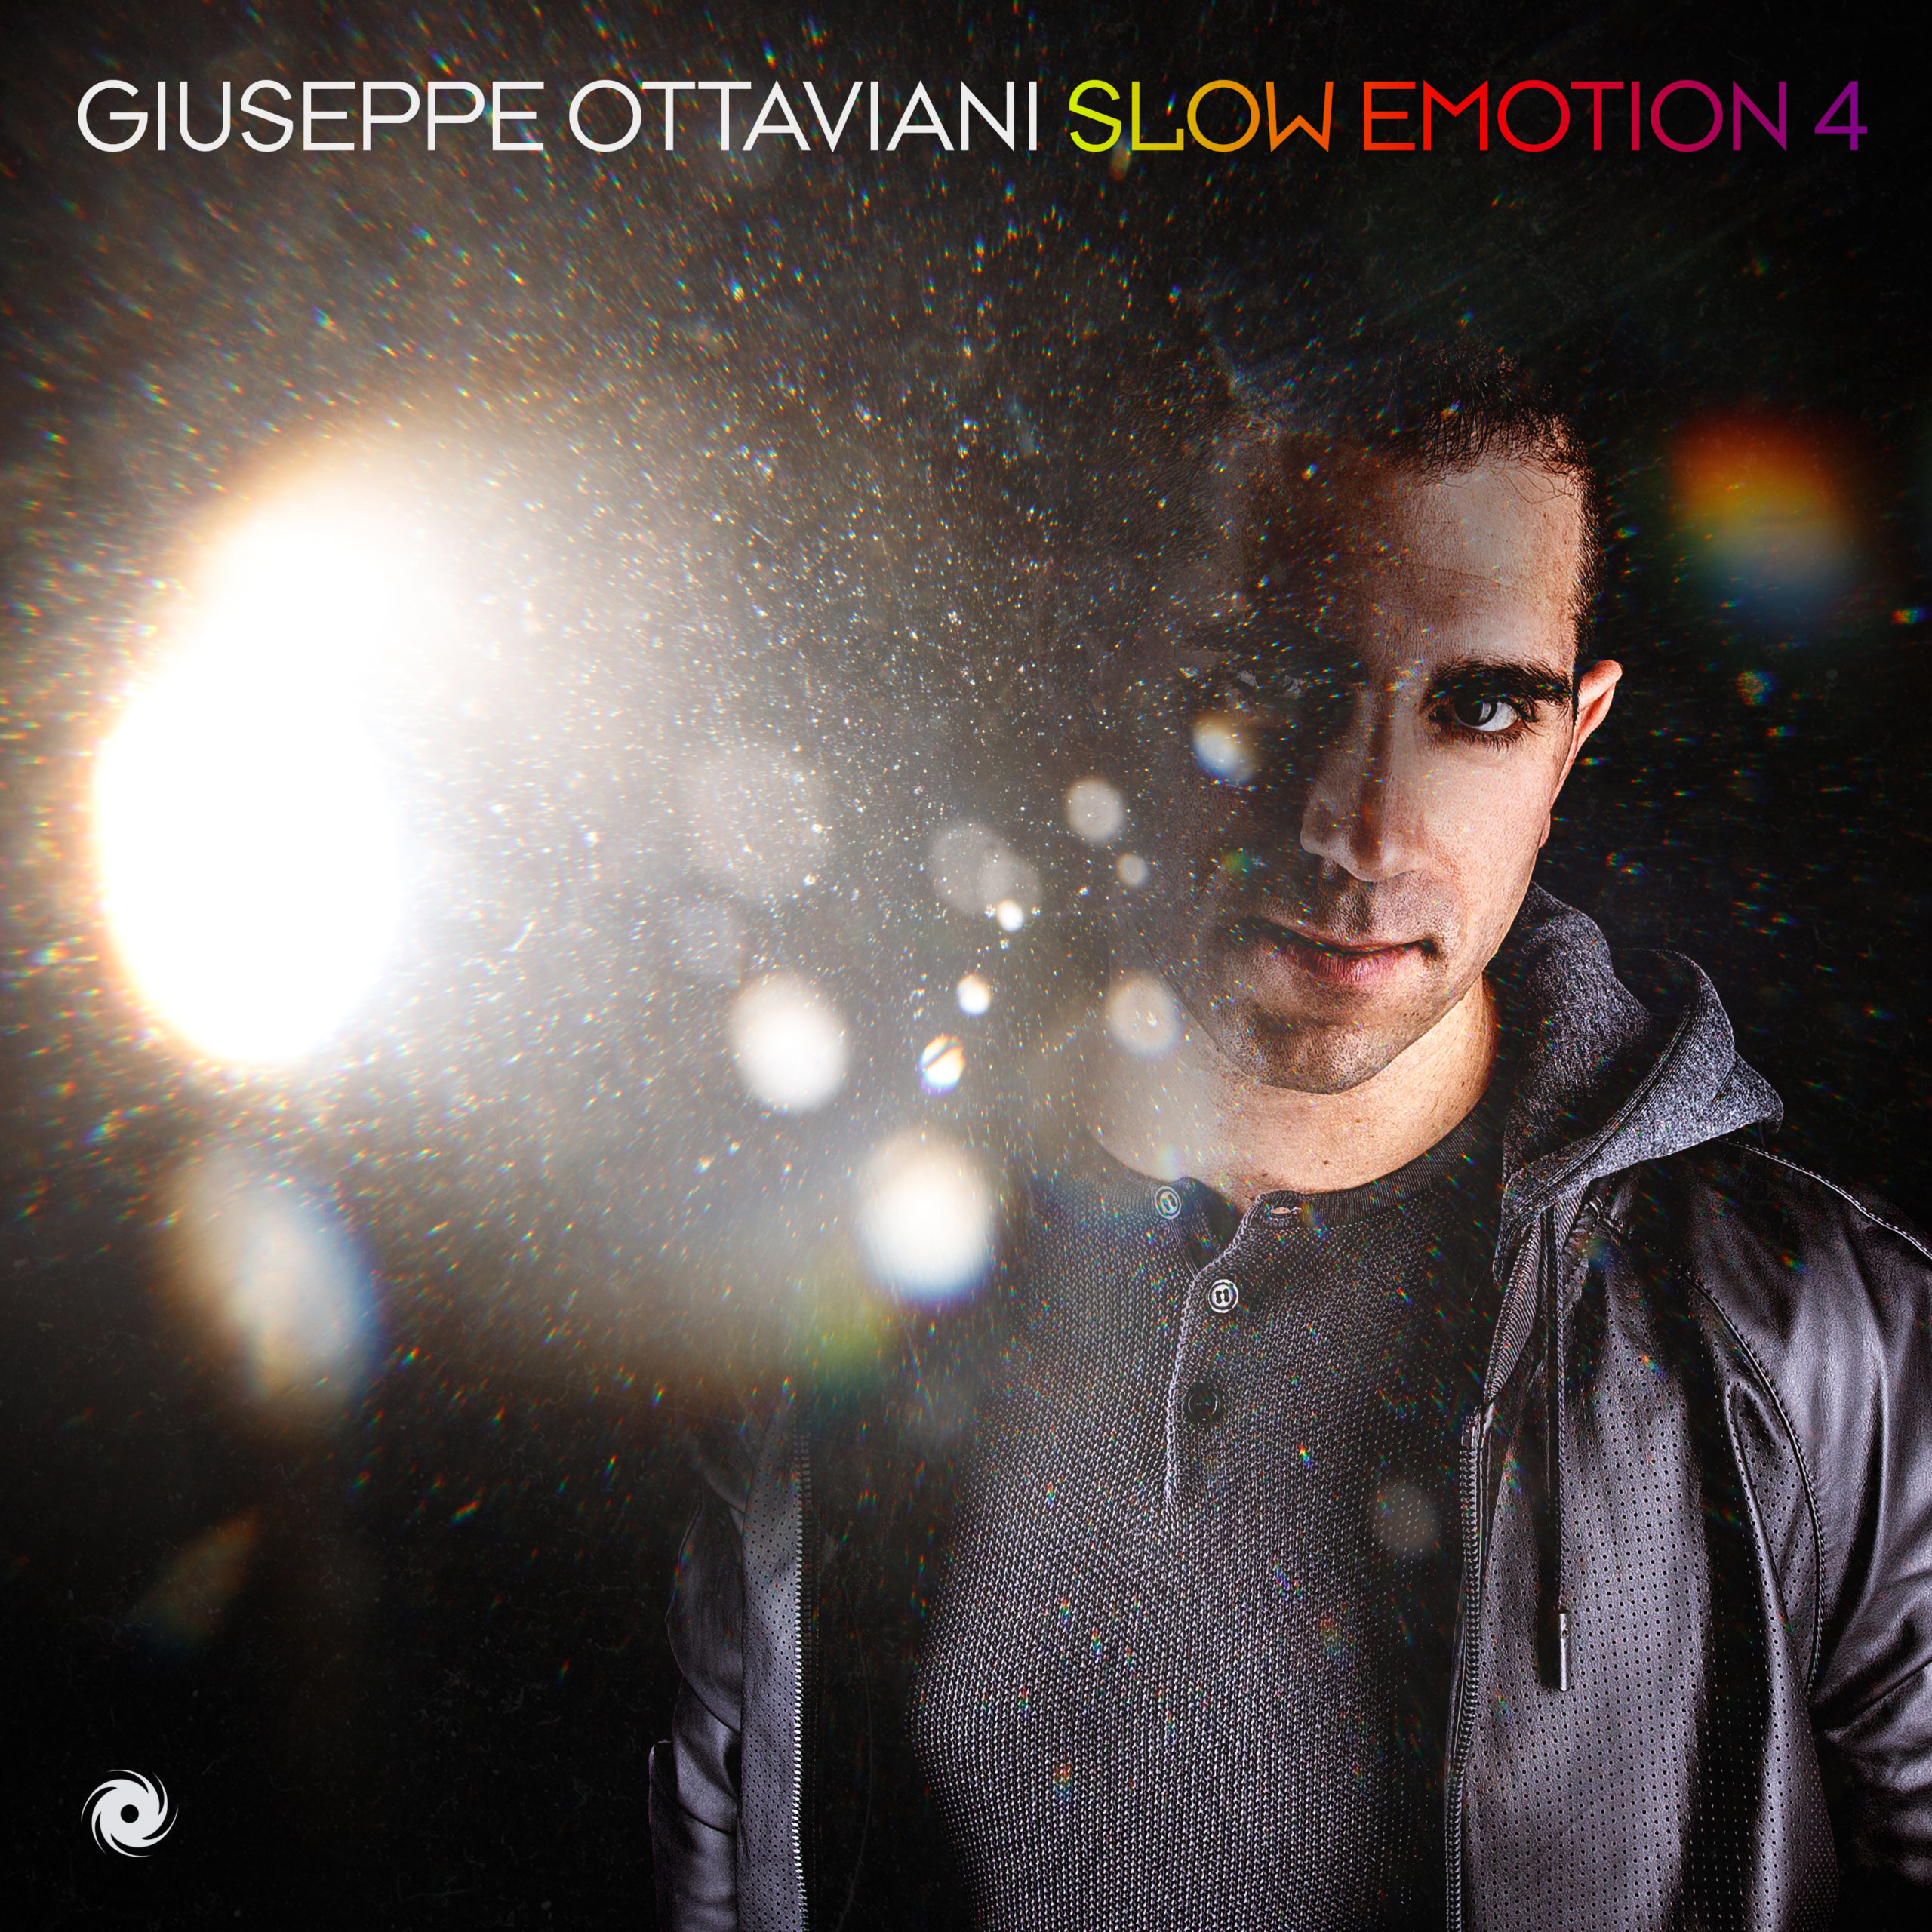 Giuseppe Ottaviani – Slow Emotion 4 [Blackhole Recordings]